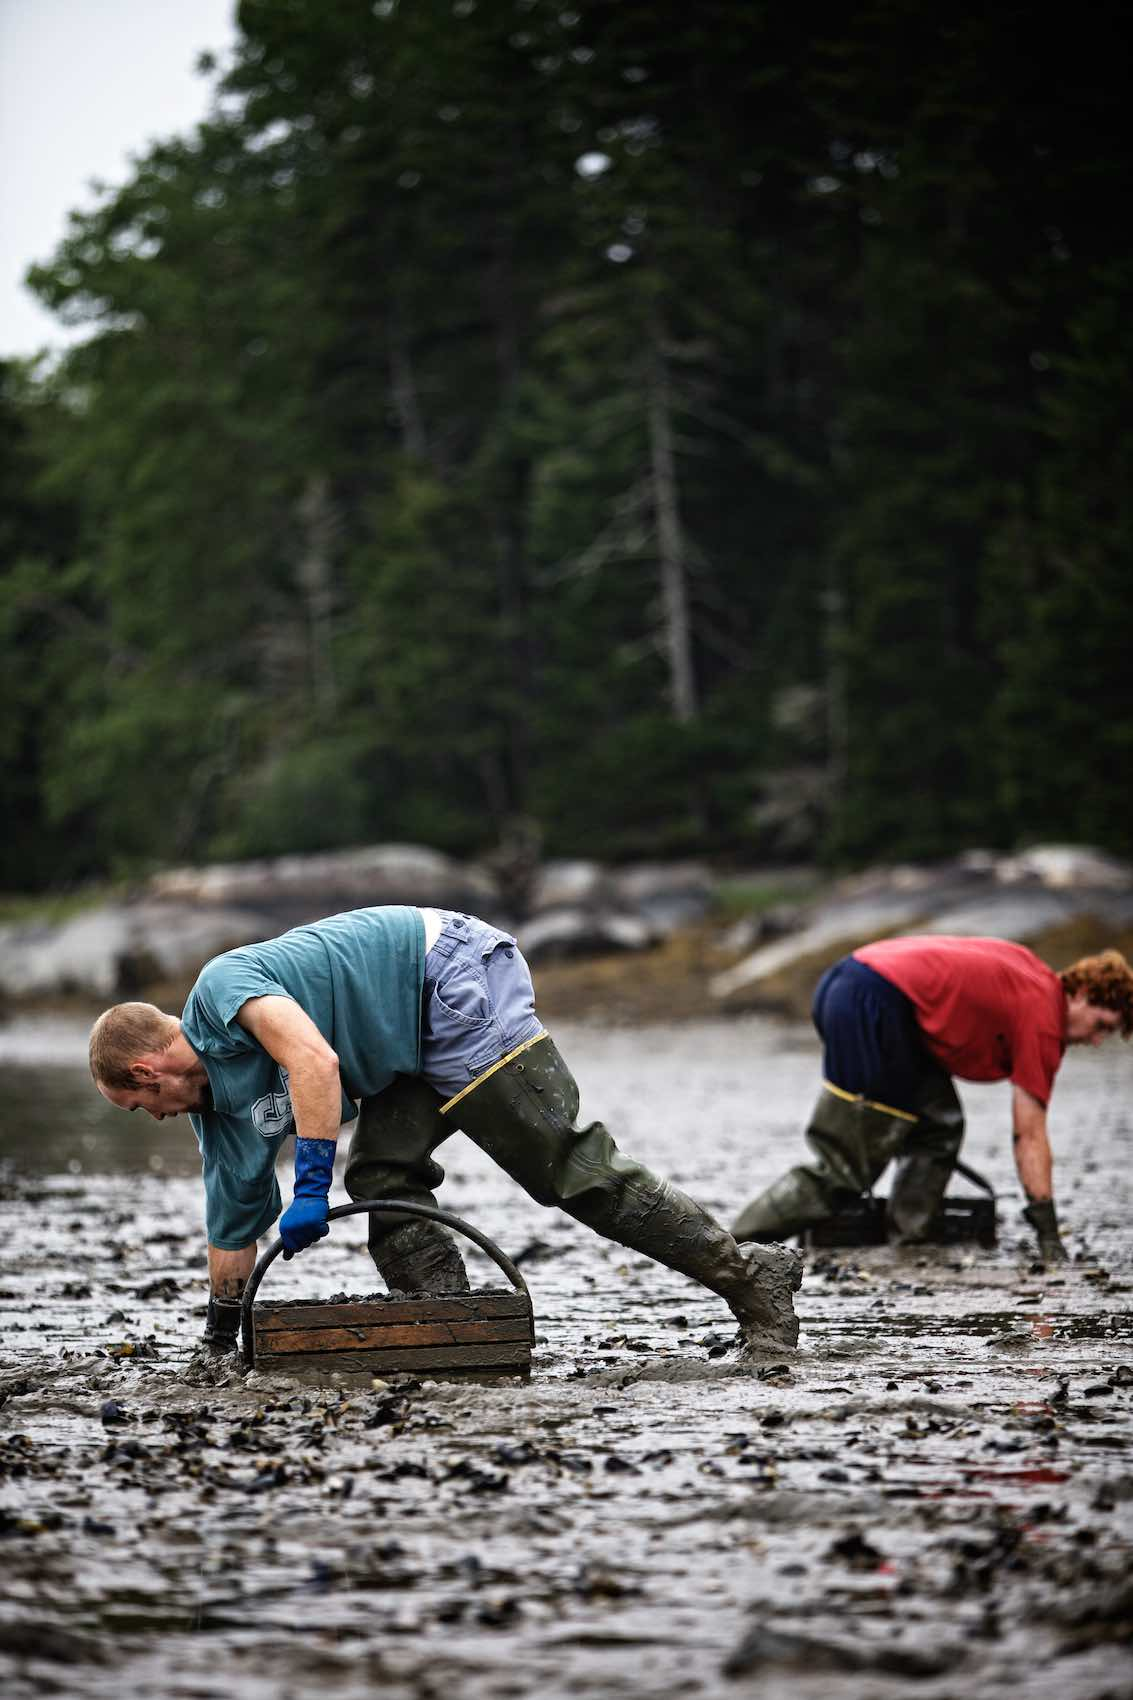 Jody Horton Photography -  Clam hunting in Maine.